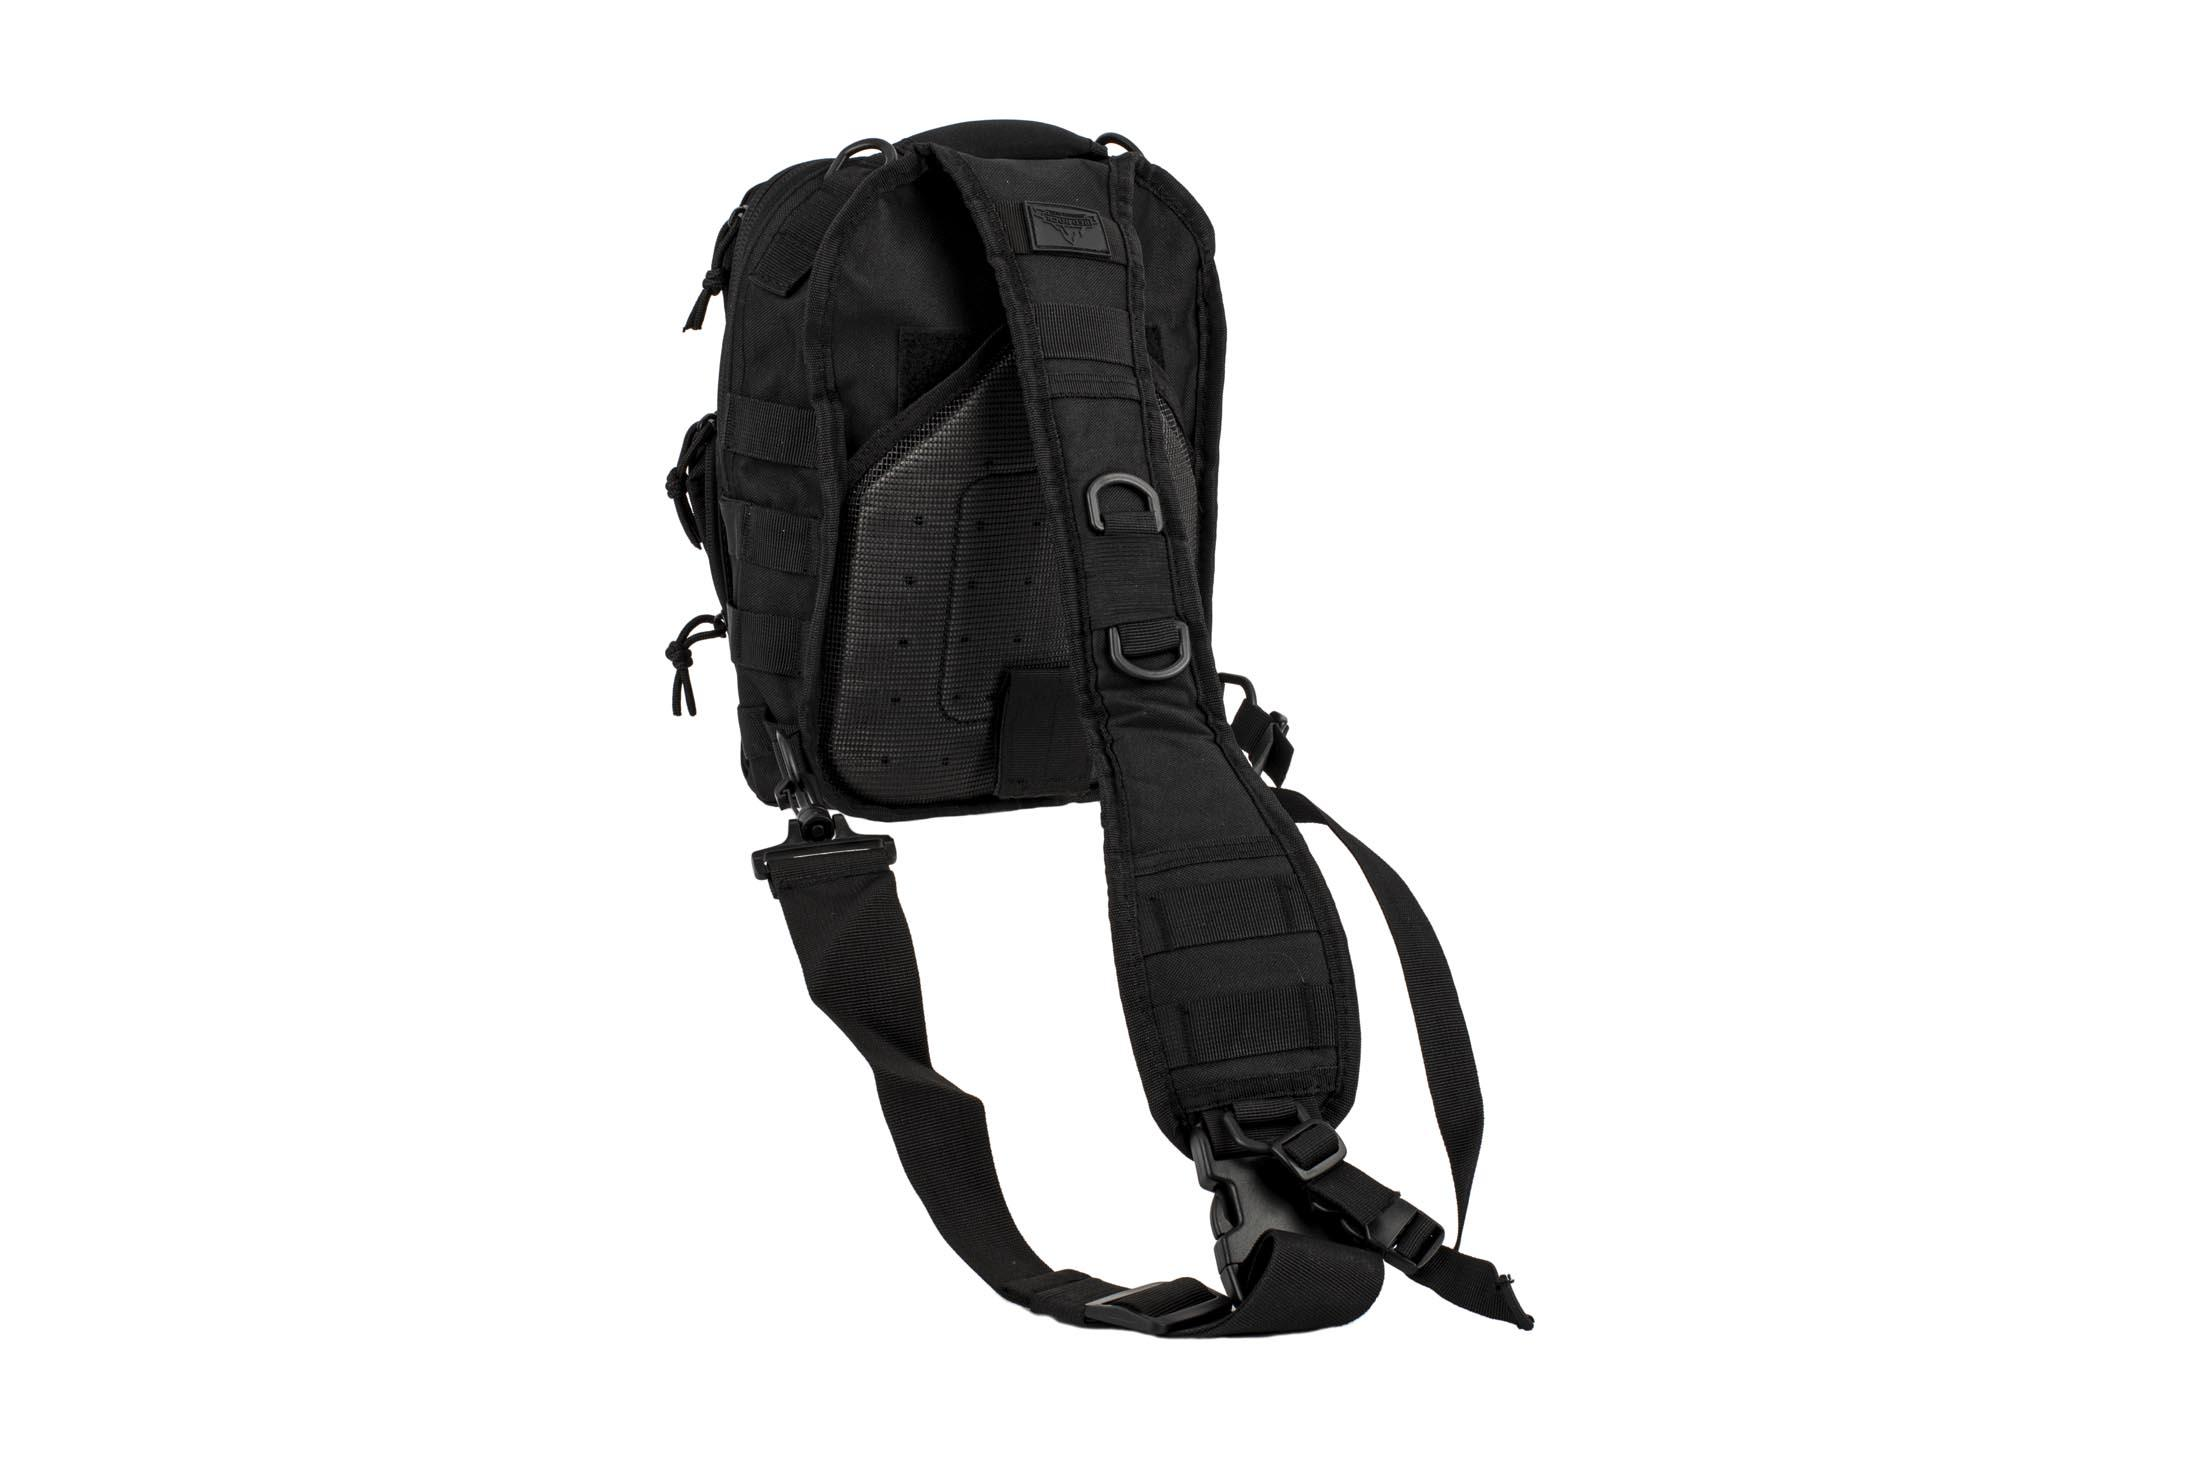 The Red Rock Outdoors Rover Sling Backpack features MOLLE webbing and breathable mesh material